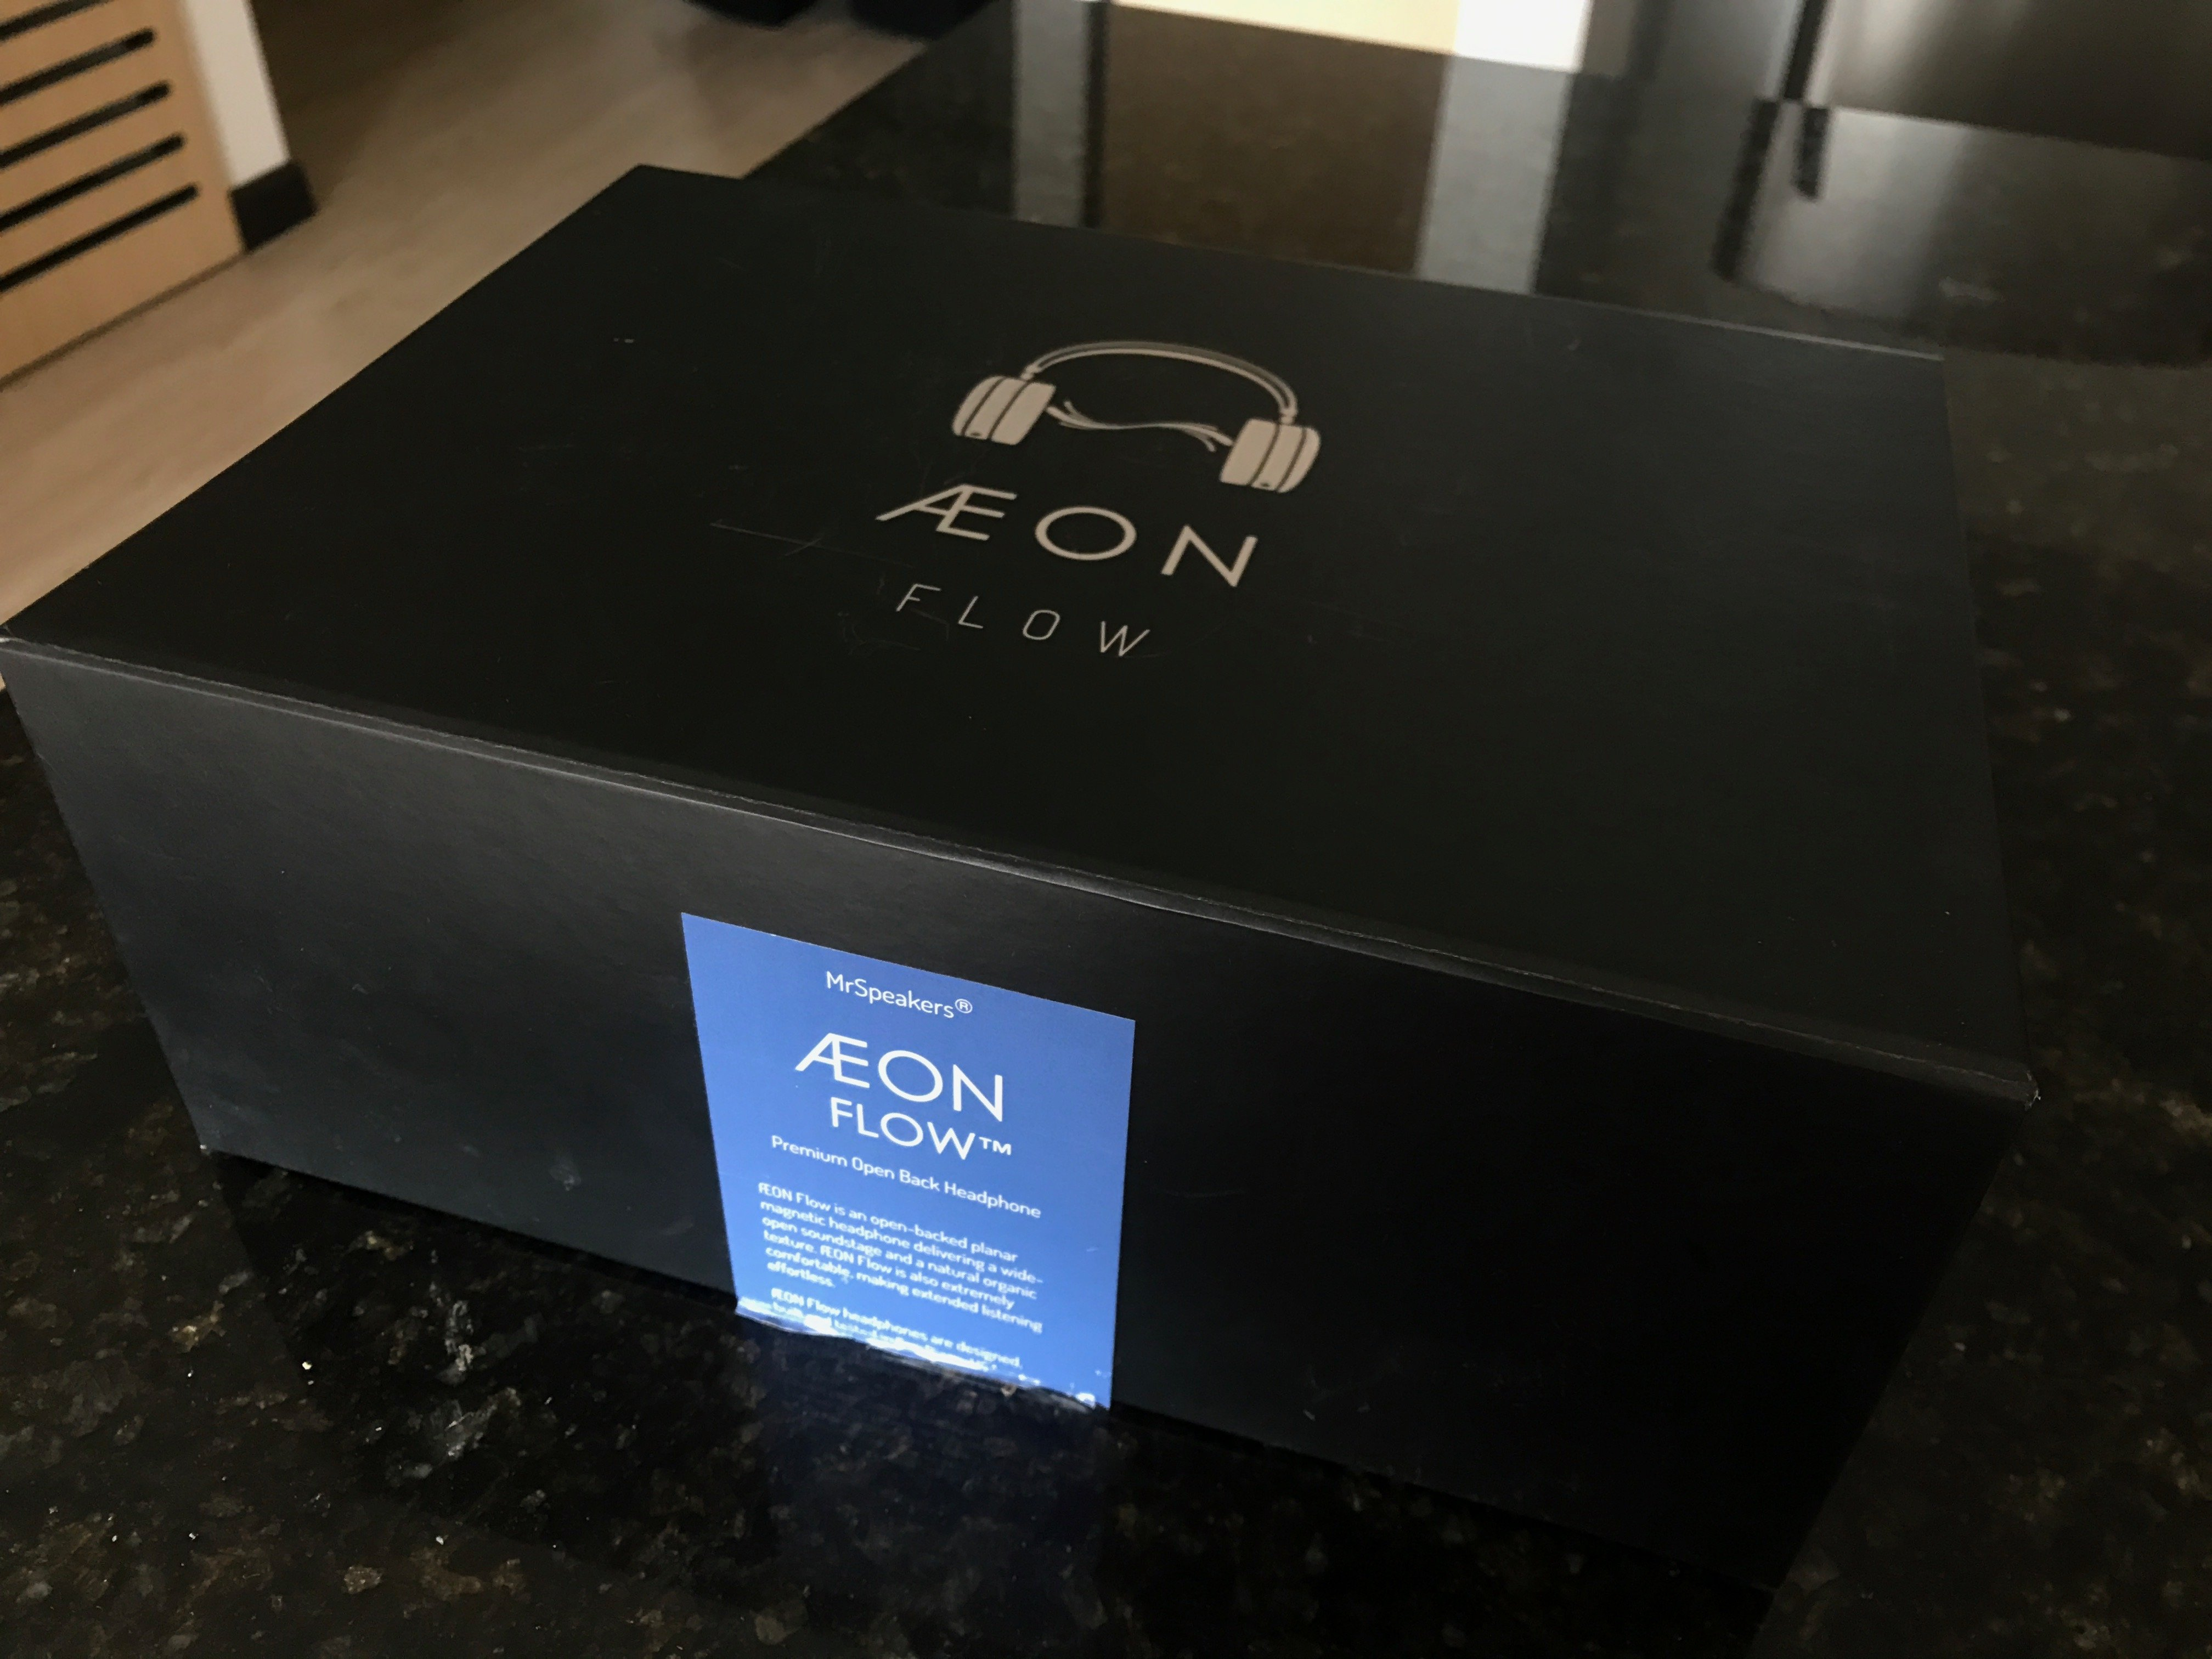 aeon box.jpeg